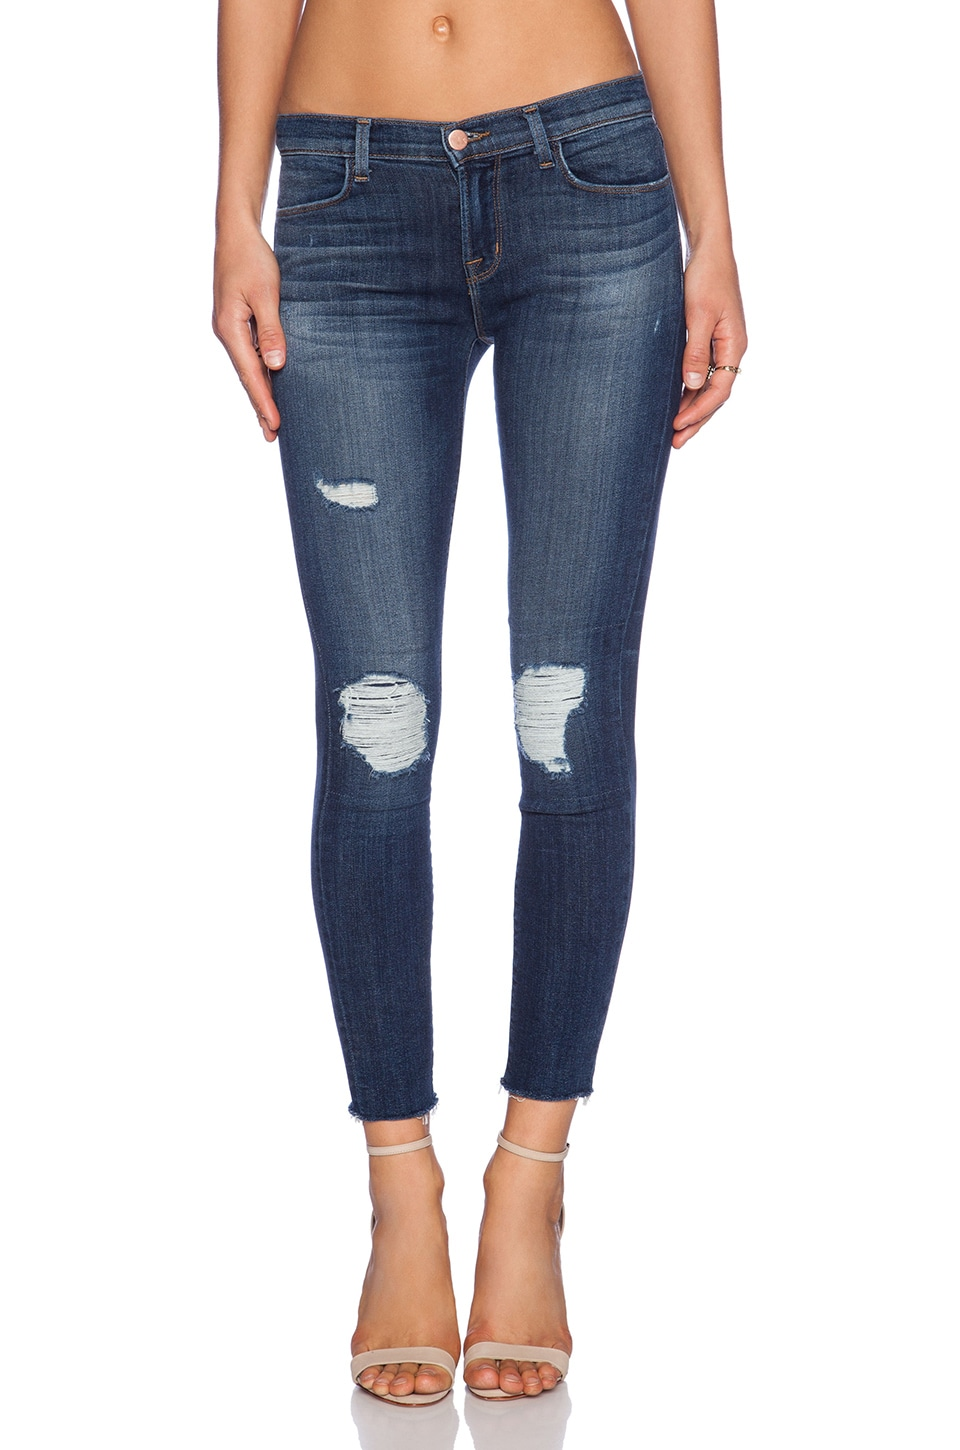 J Brand Cropped Mid Rise Skinny in Trouble Maker